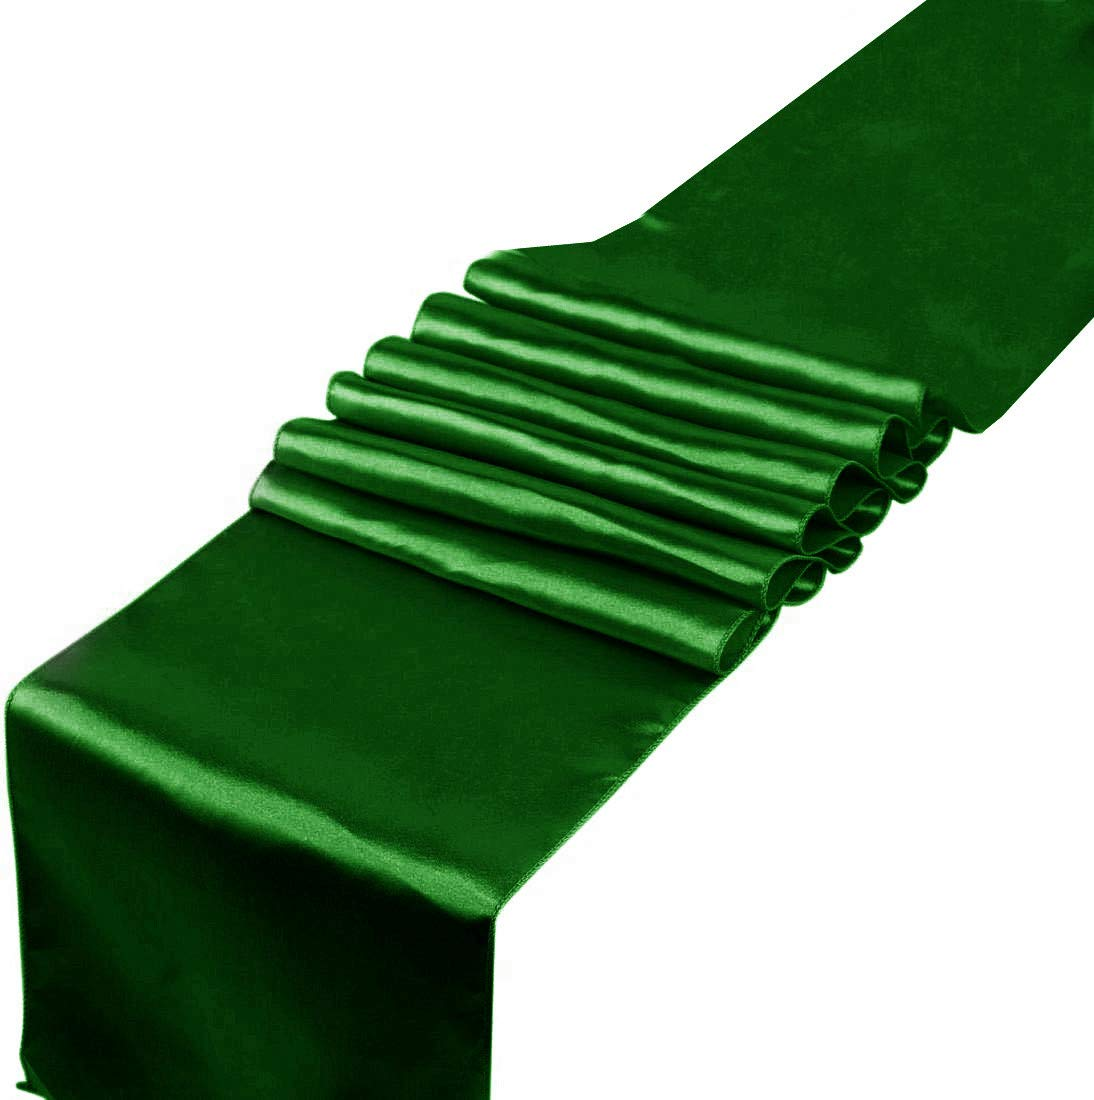 Spring Table Runner 12x108 Inches Long Green Satin Table Runners Pack of 10, for Wedding Reception Anniversary Birthday Party Meeting Events Meeting Supplies Table Decorations, Chair Sashes